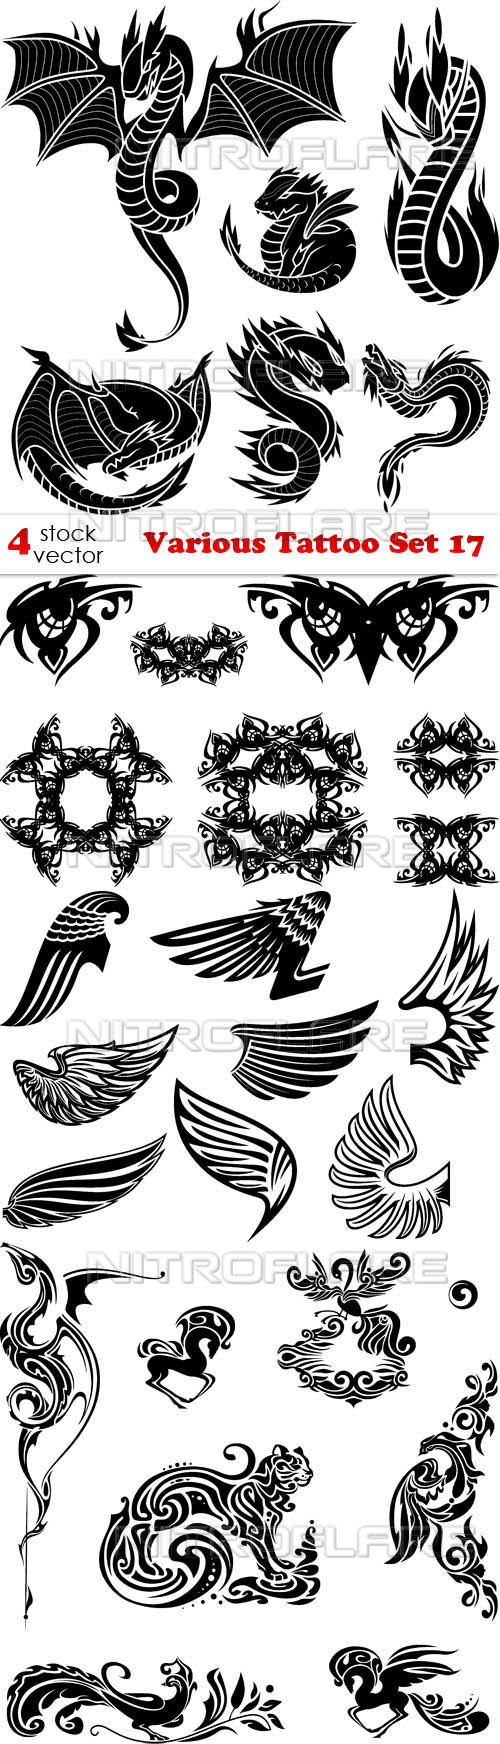 Vectors - Various Tattoo Set 17